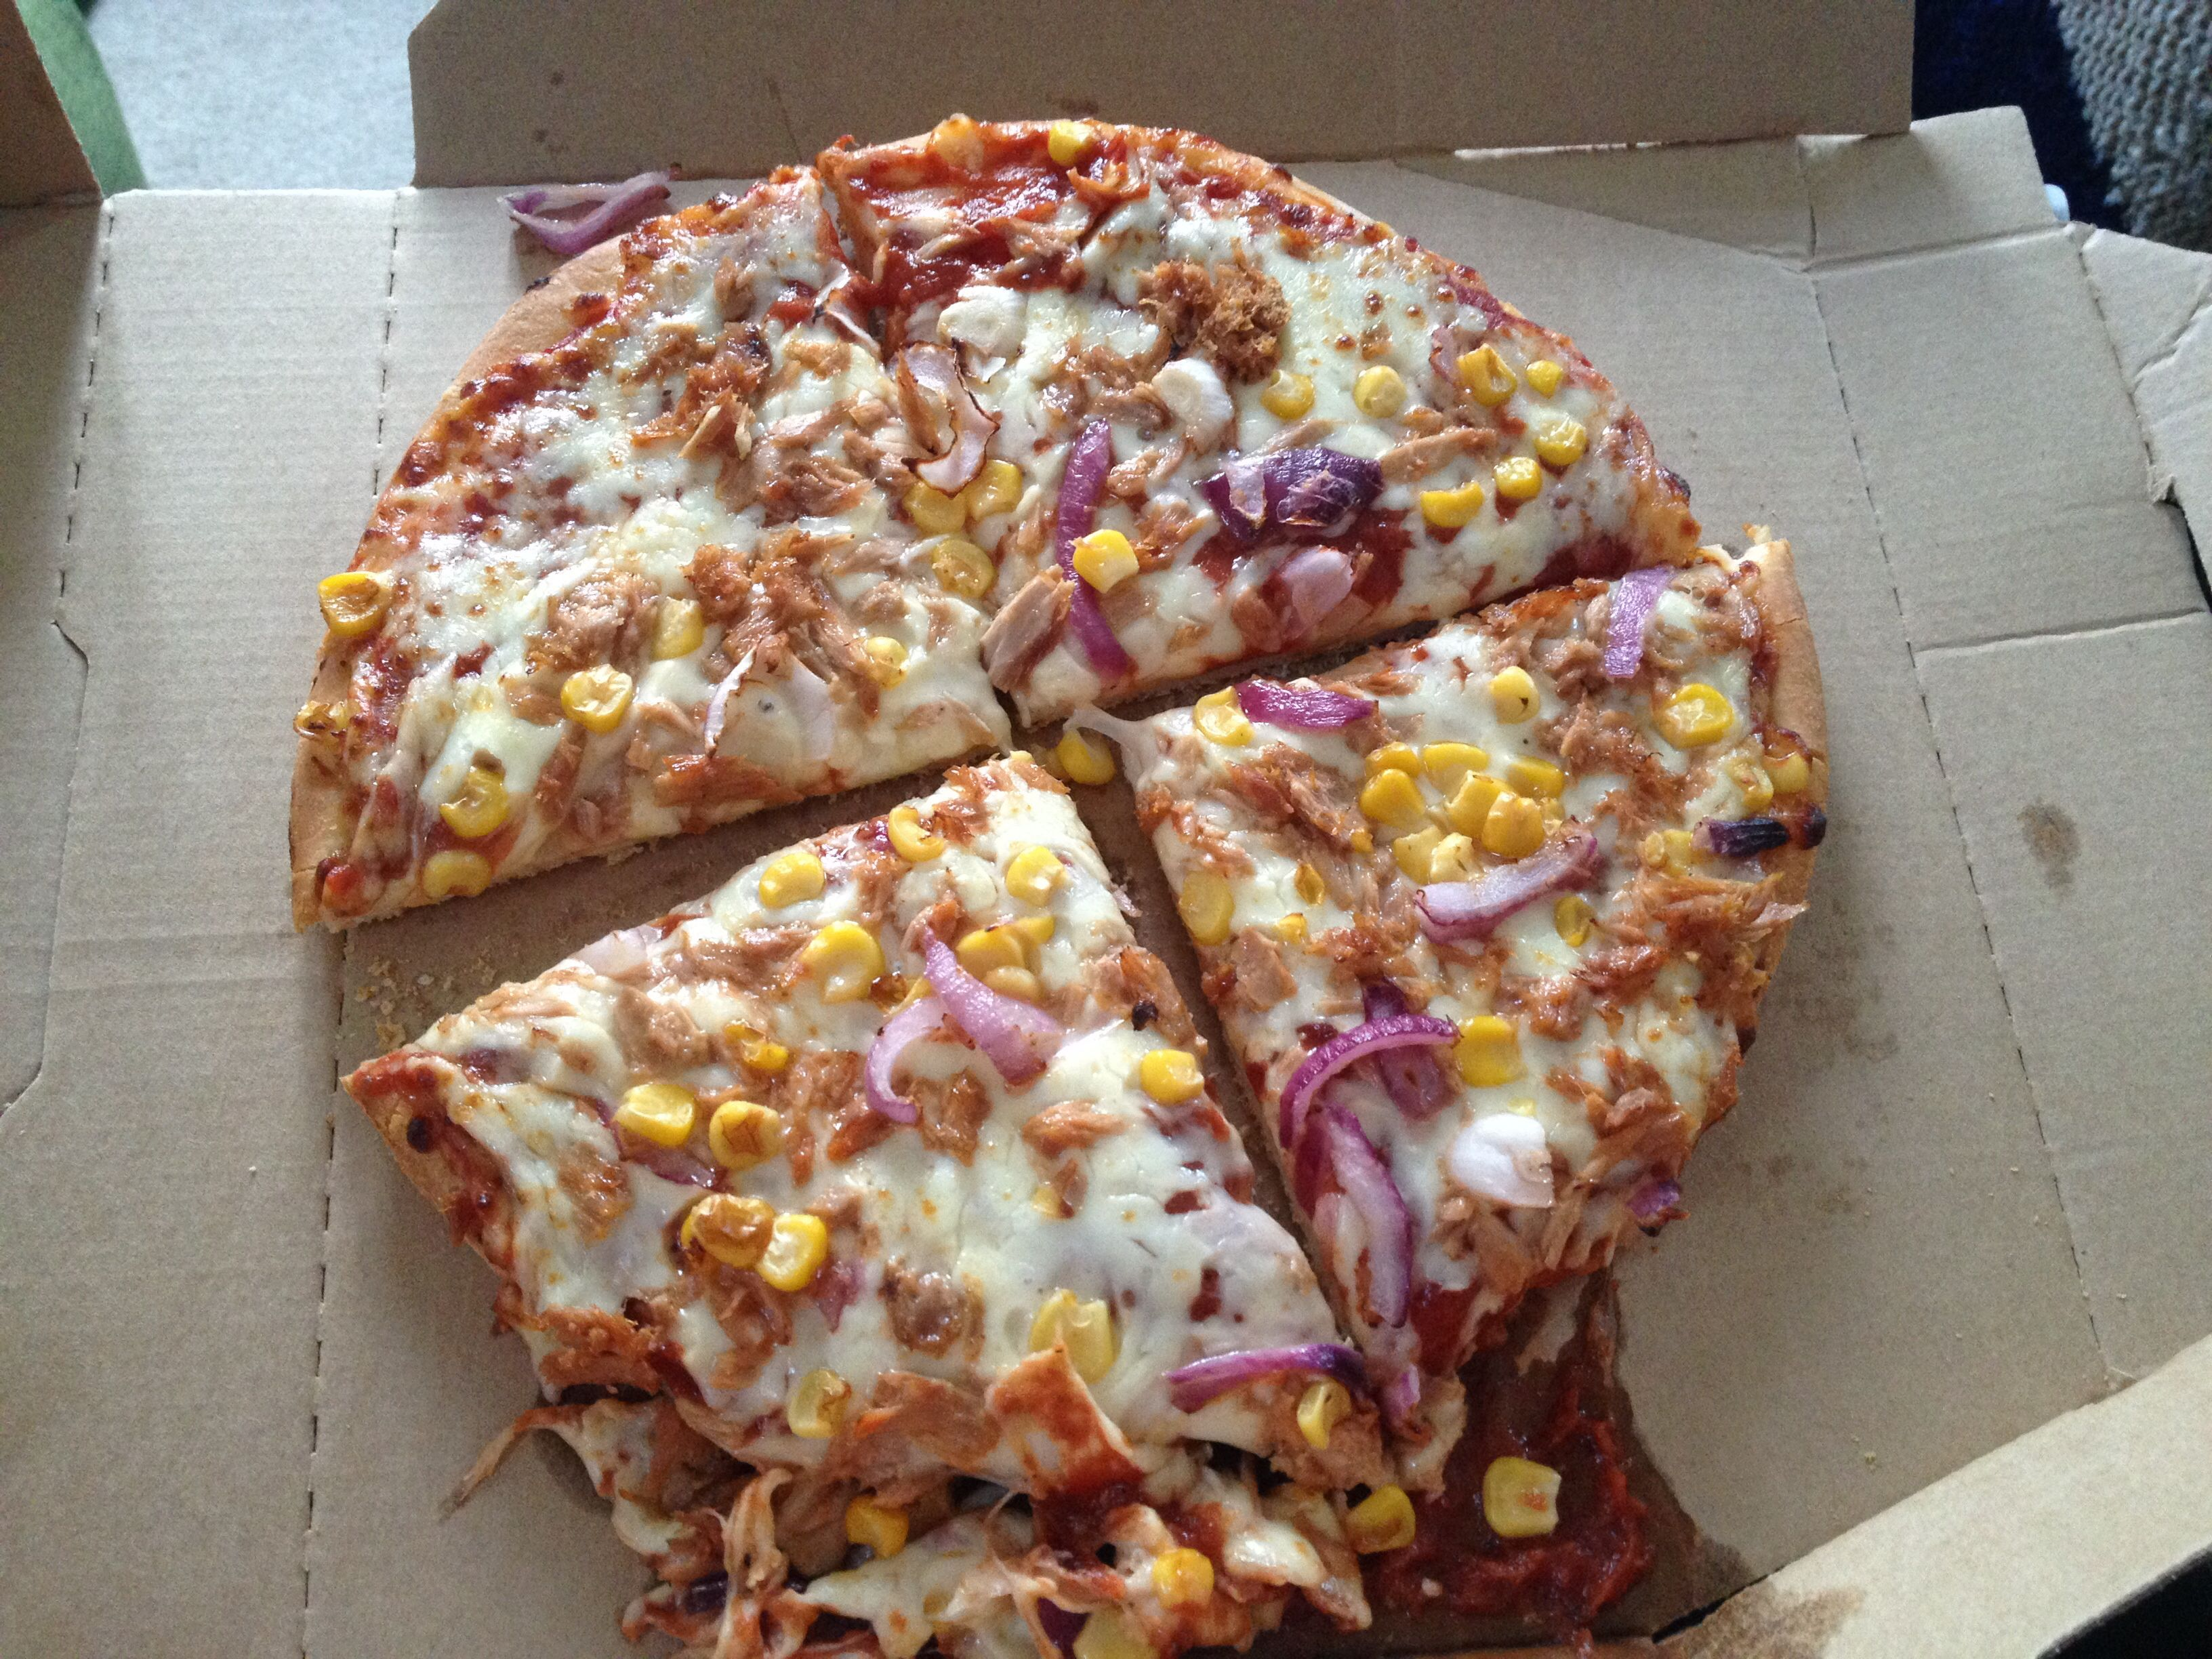 Tuna Sweetcorn Red Onion Pizza Dominos Chesterfield15 08 2014